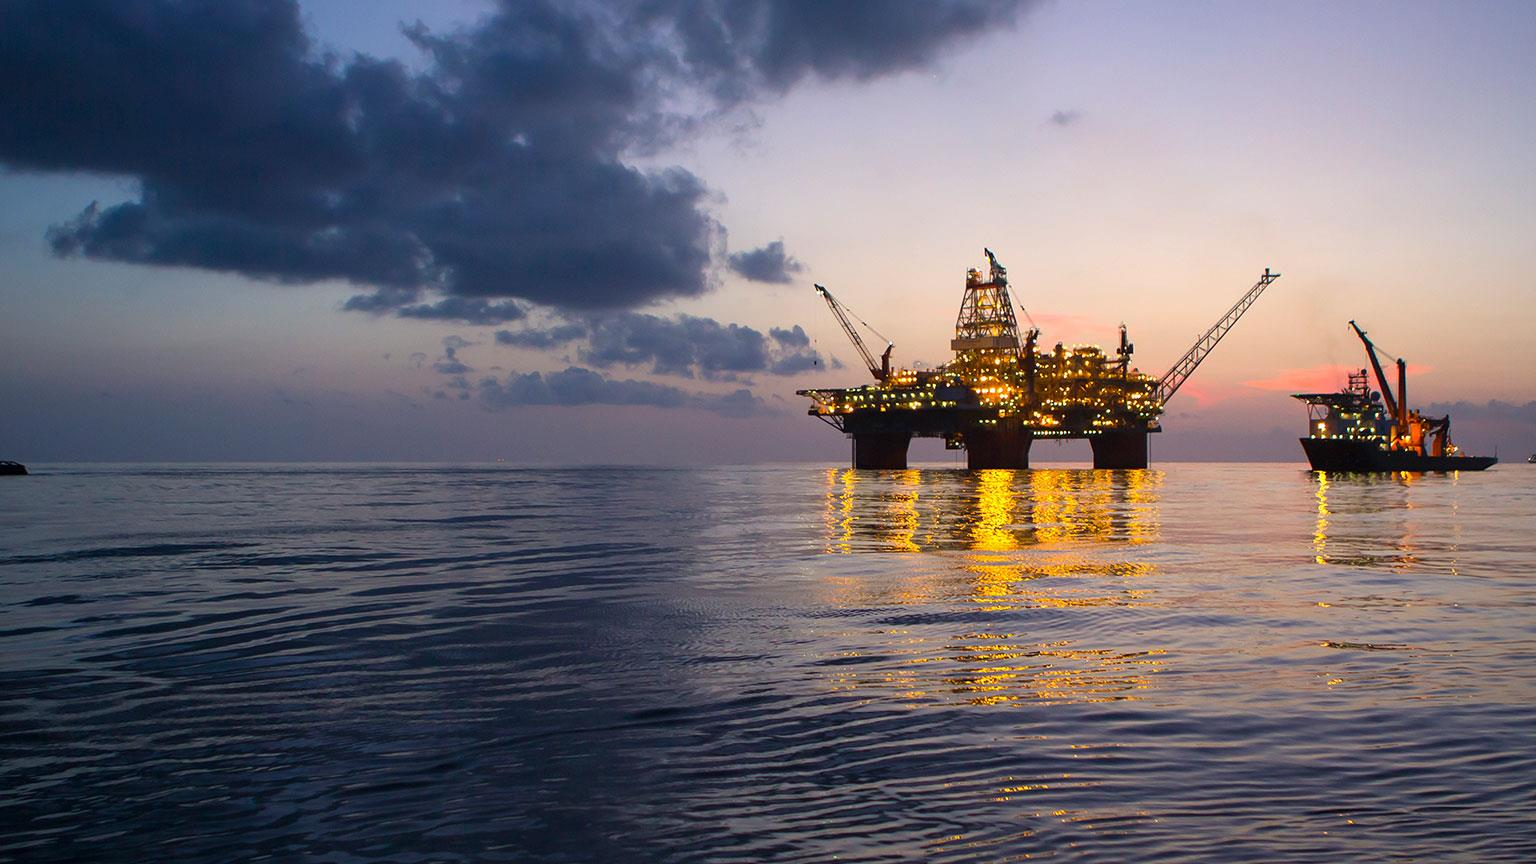 Brazil has the potential for a 70% oil production increase